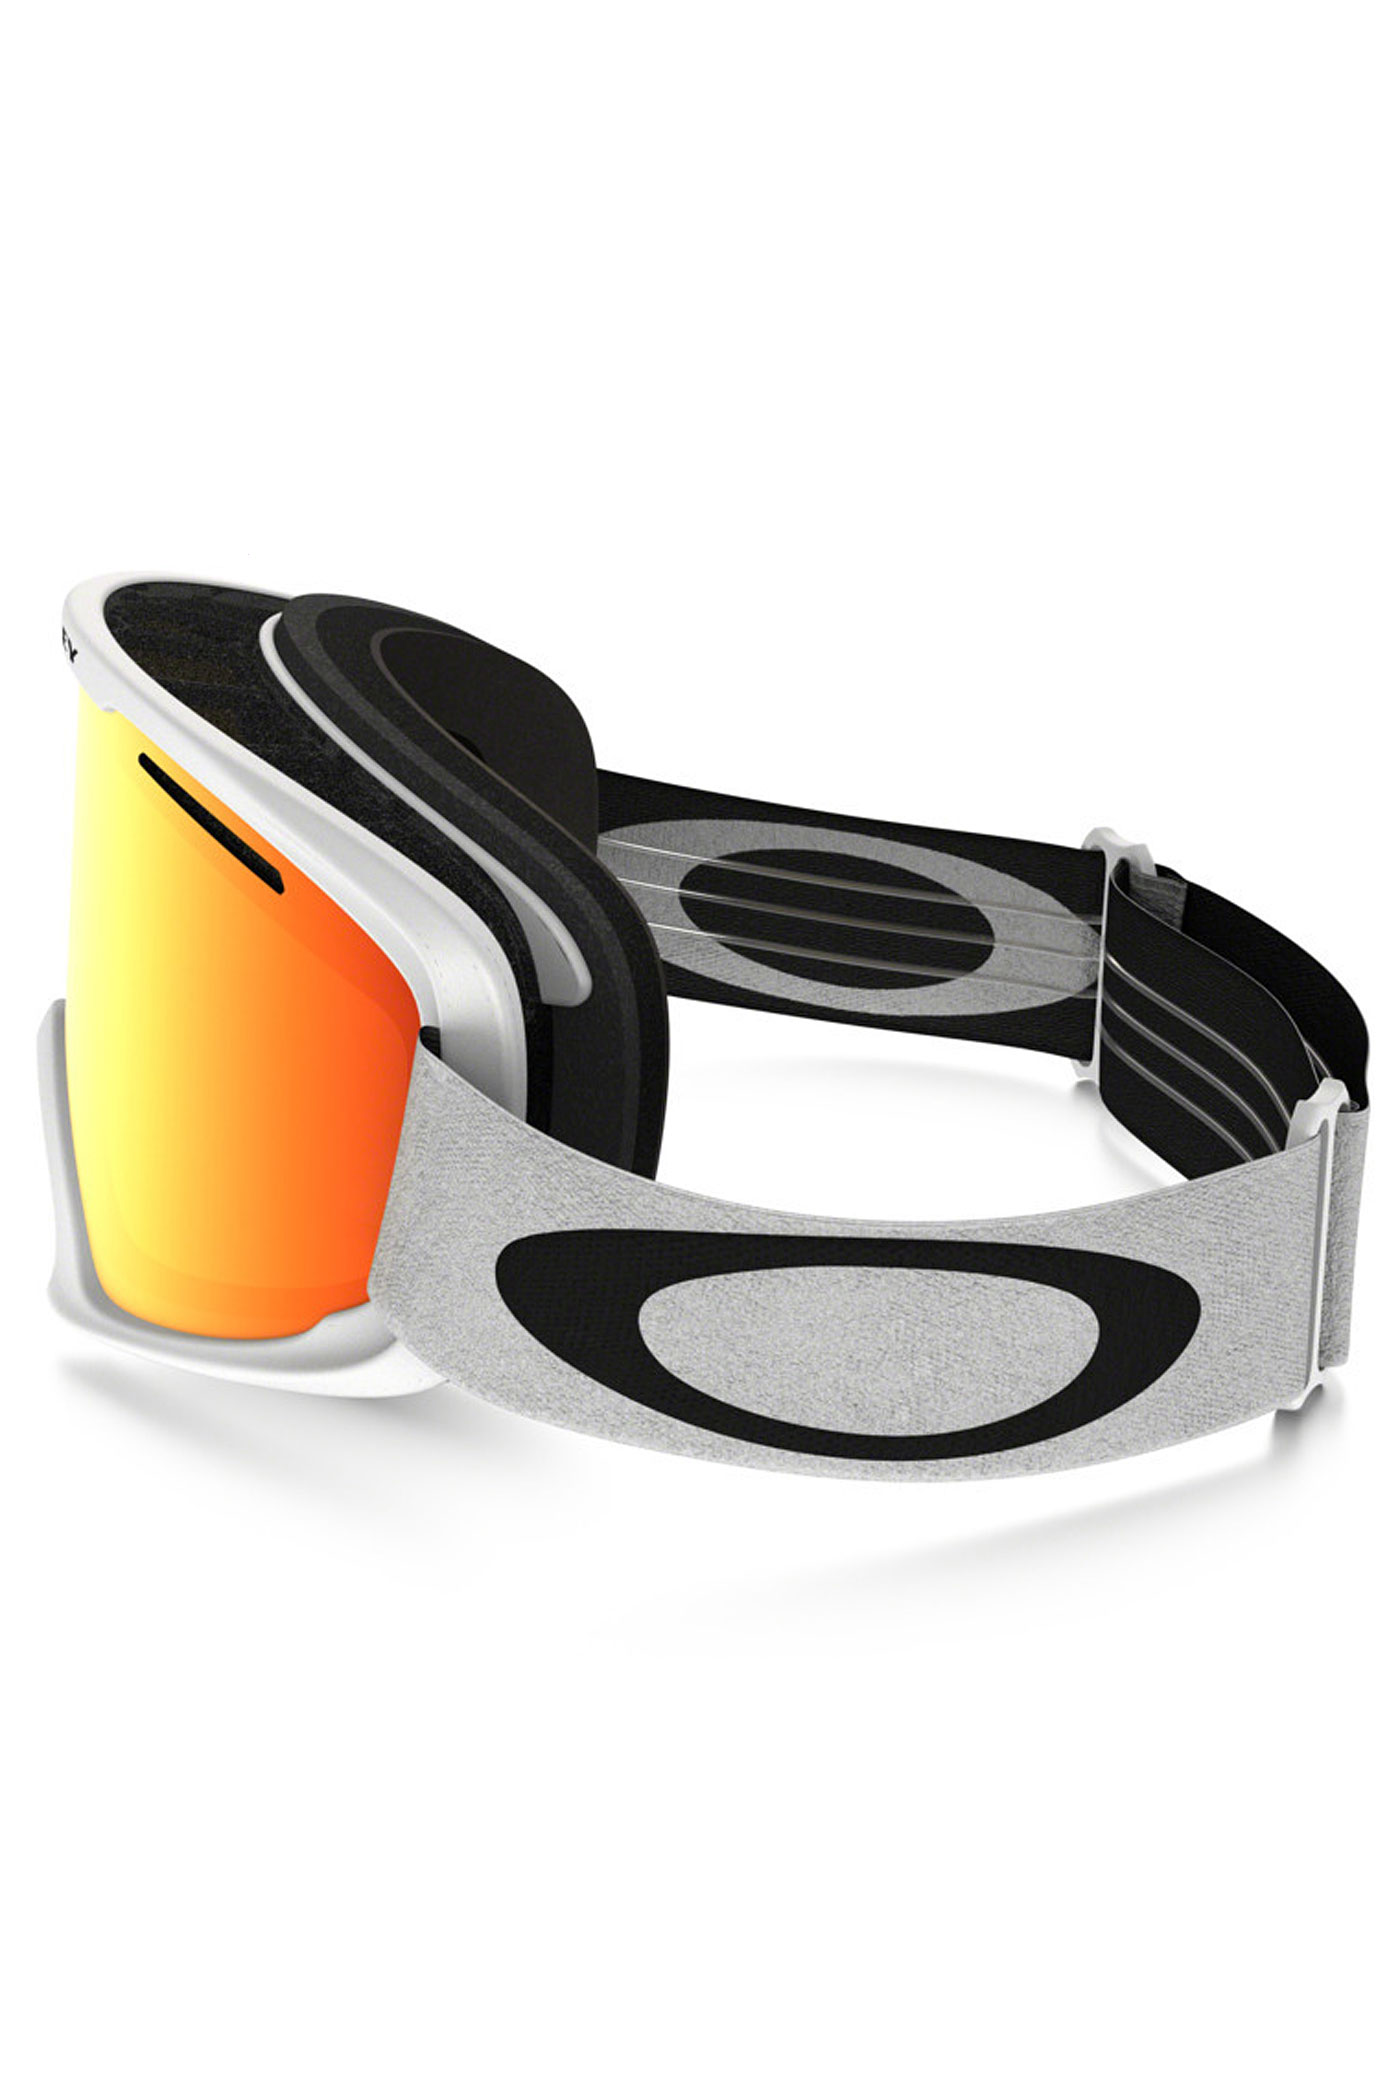 fefcd6627bd Oakley O2 XM Goggles (matte white fire iridium) buy at skatedeluxe